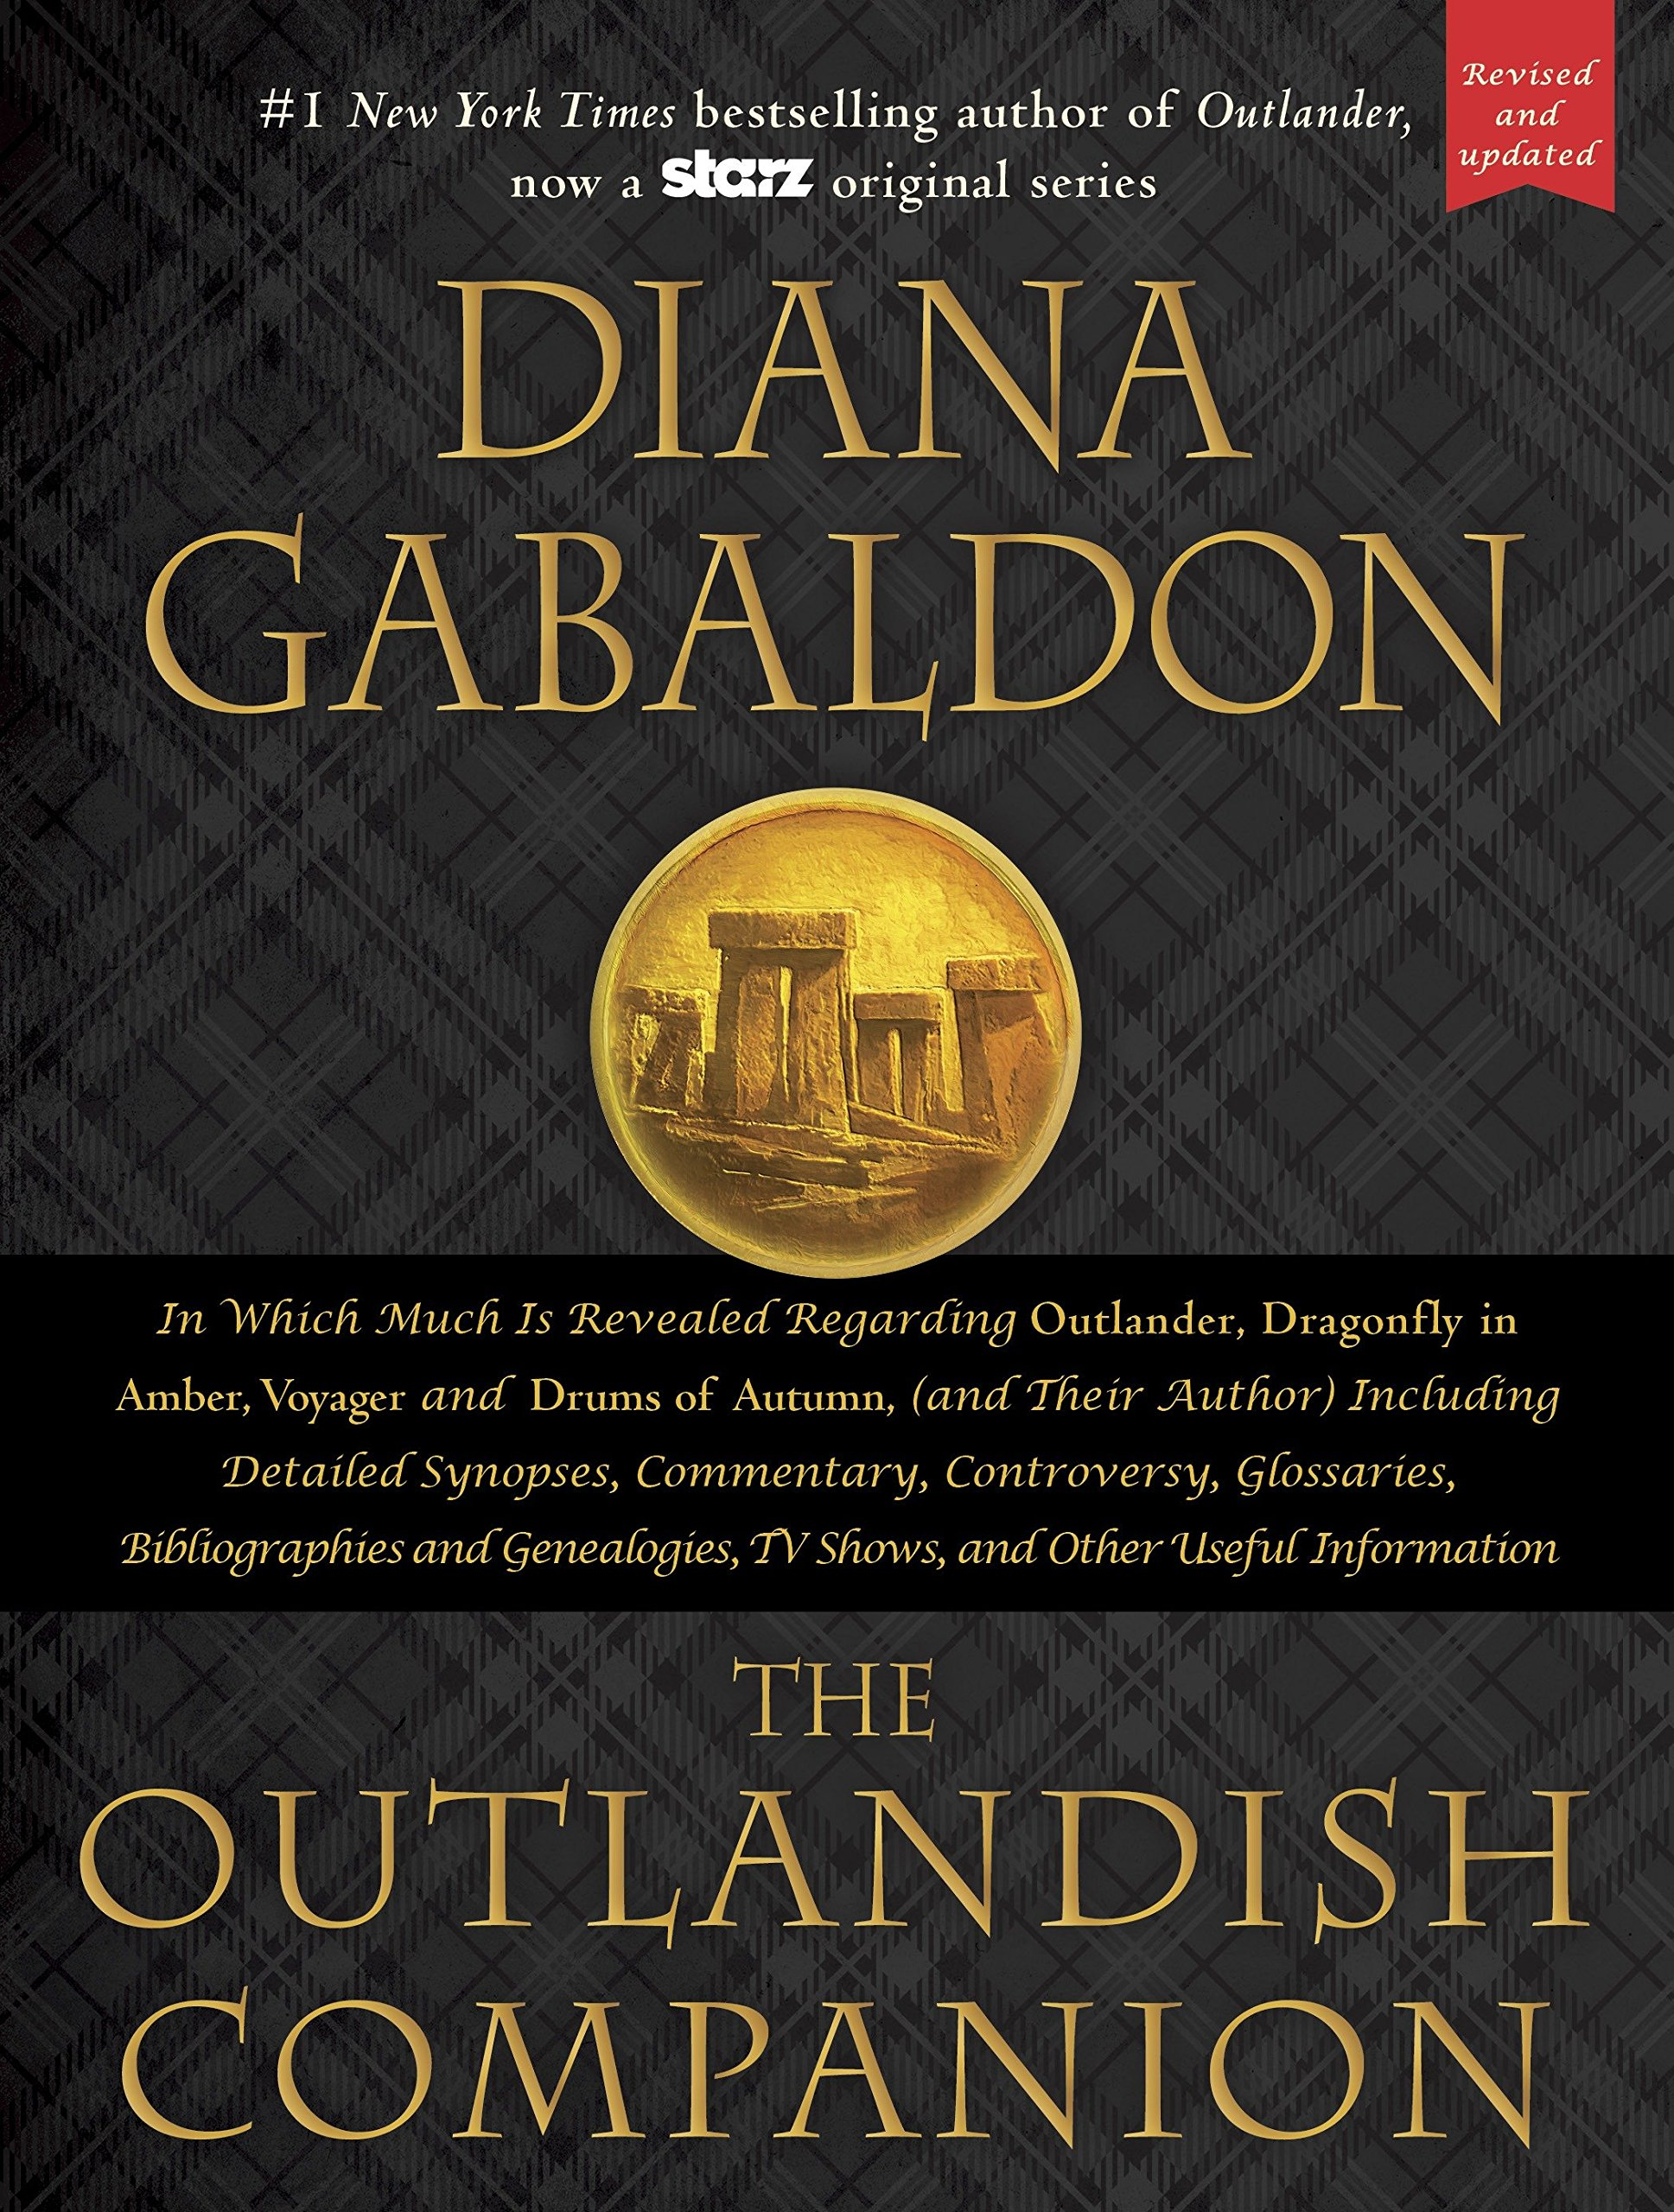 The Outlandish Companion (Revised and Updated): Companion to Outlander, Dragonfly in Amber, Voyager, and Drums of Autumn